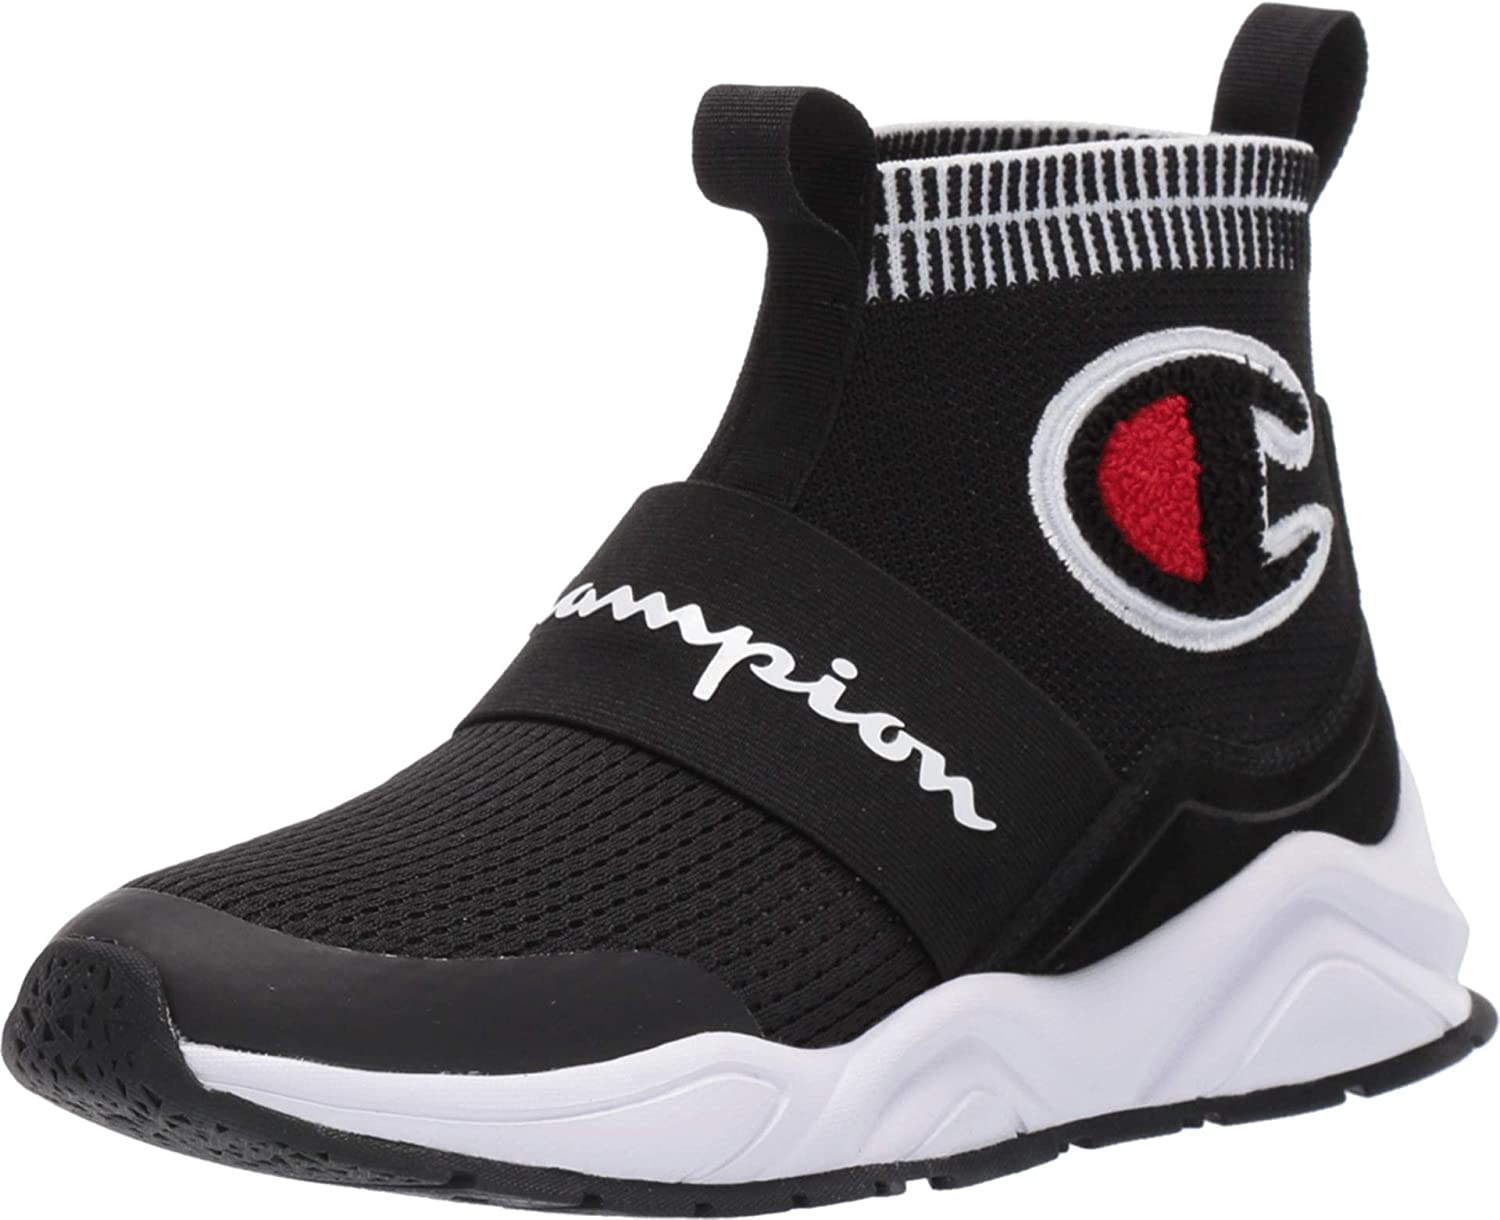 champion shoes rally pro off 72% - ahds